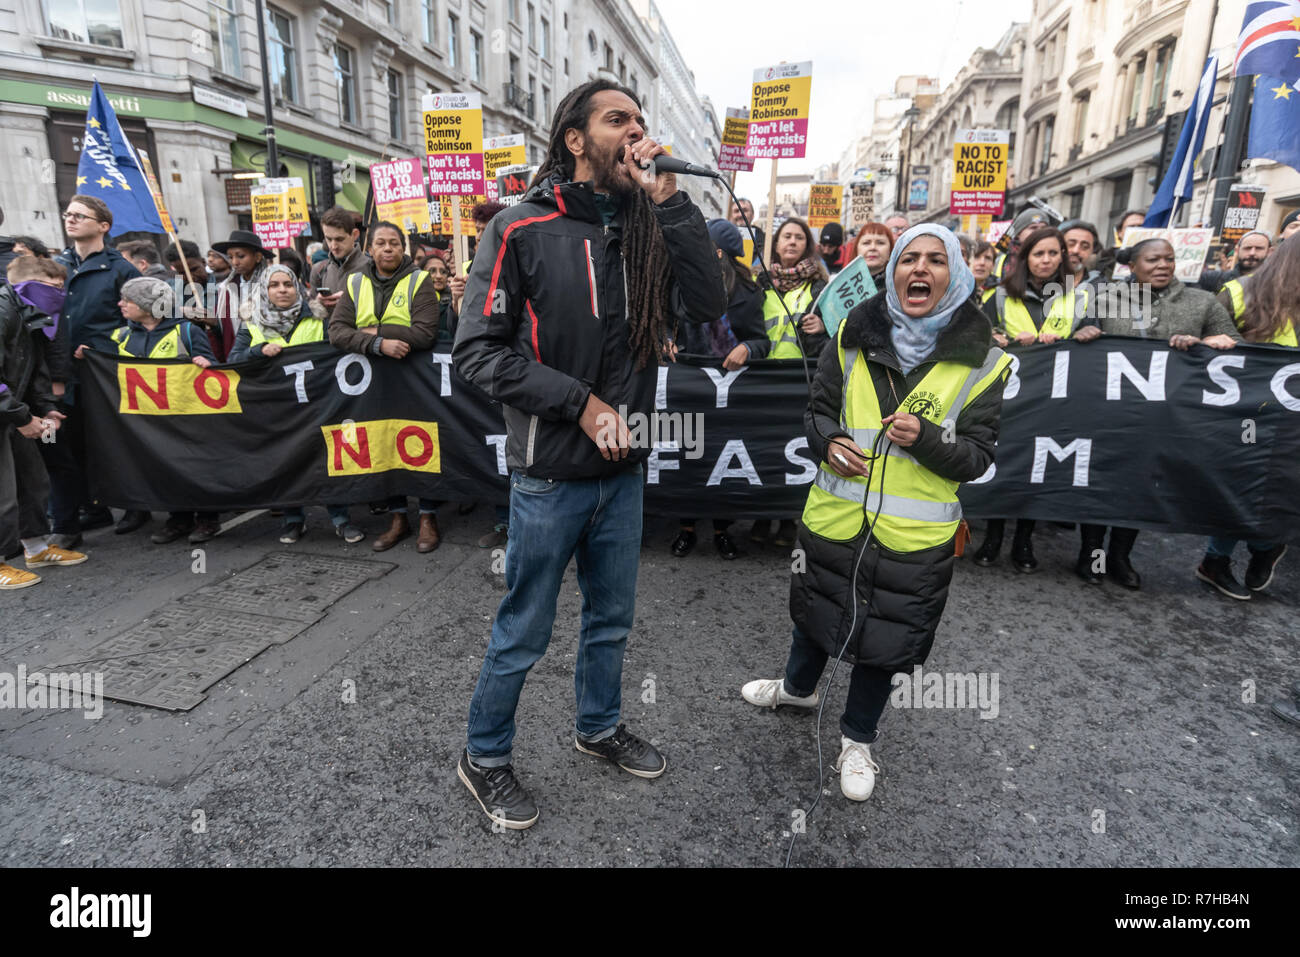 London, UK. 9th Dec, 2018. A united counter demonstration by anti-fascists has to wait for a few minutes on Haymarket until police clear the route. The protest was in opposition to Tommy Robinson's fascist pro-Brexit march. The march which included both remain and leave supporting anti-fascists gathered at the BBC to to to a rally at Downing St. Police had issued conditions on both events designed to keep the two groups well apart. Credit: Peter Marshall/Alamy Live News Stock Photo